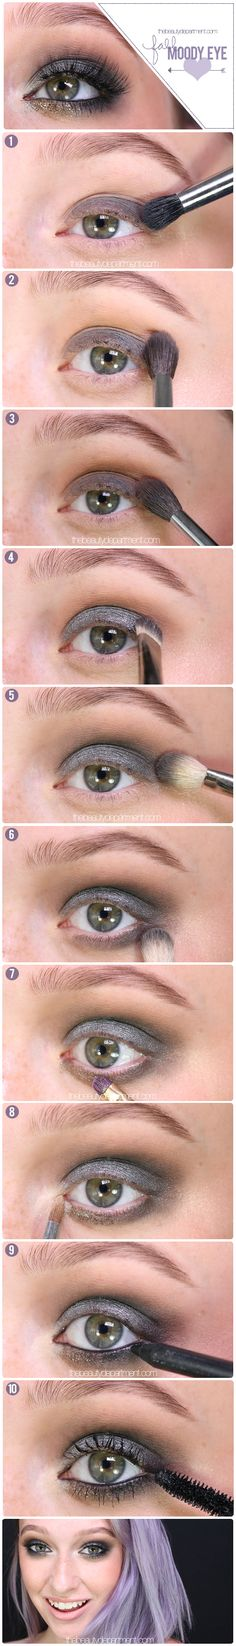 Transition into Fall with this moody eye!